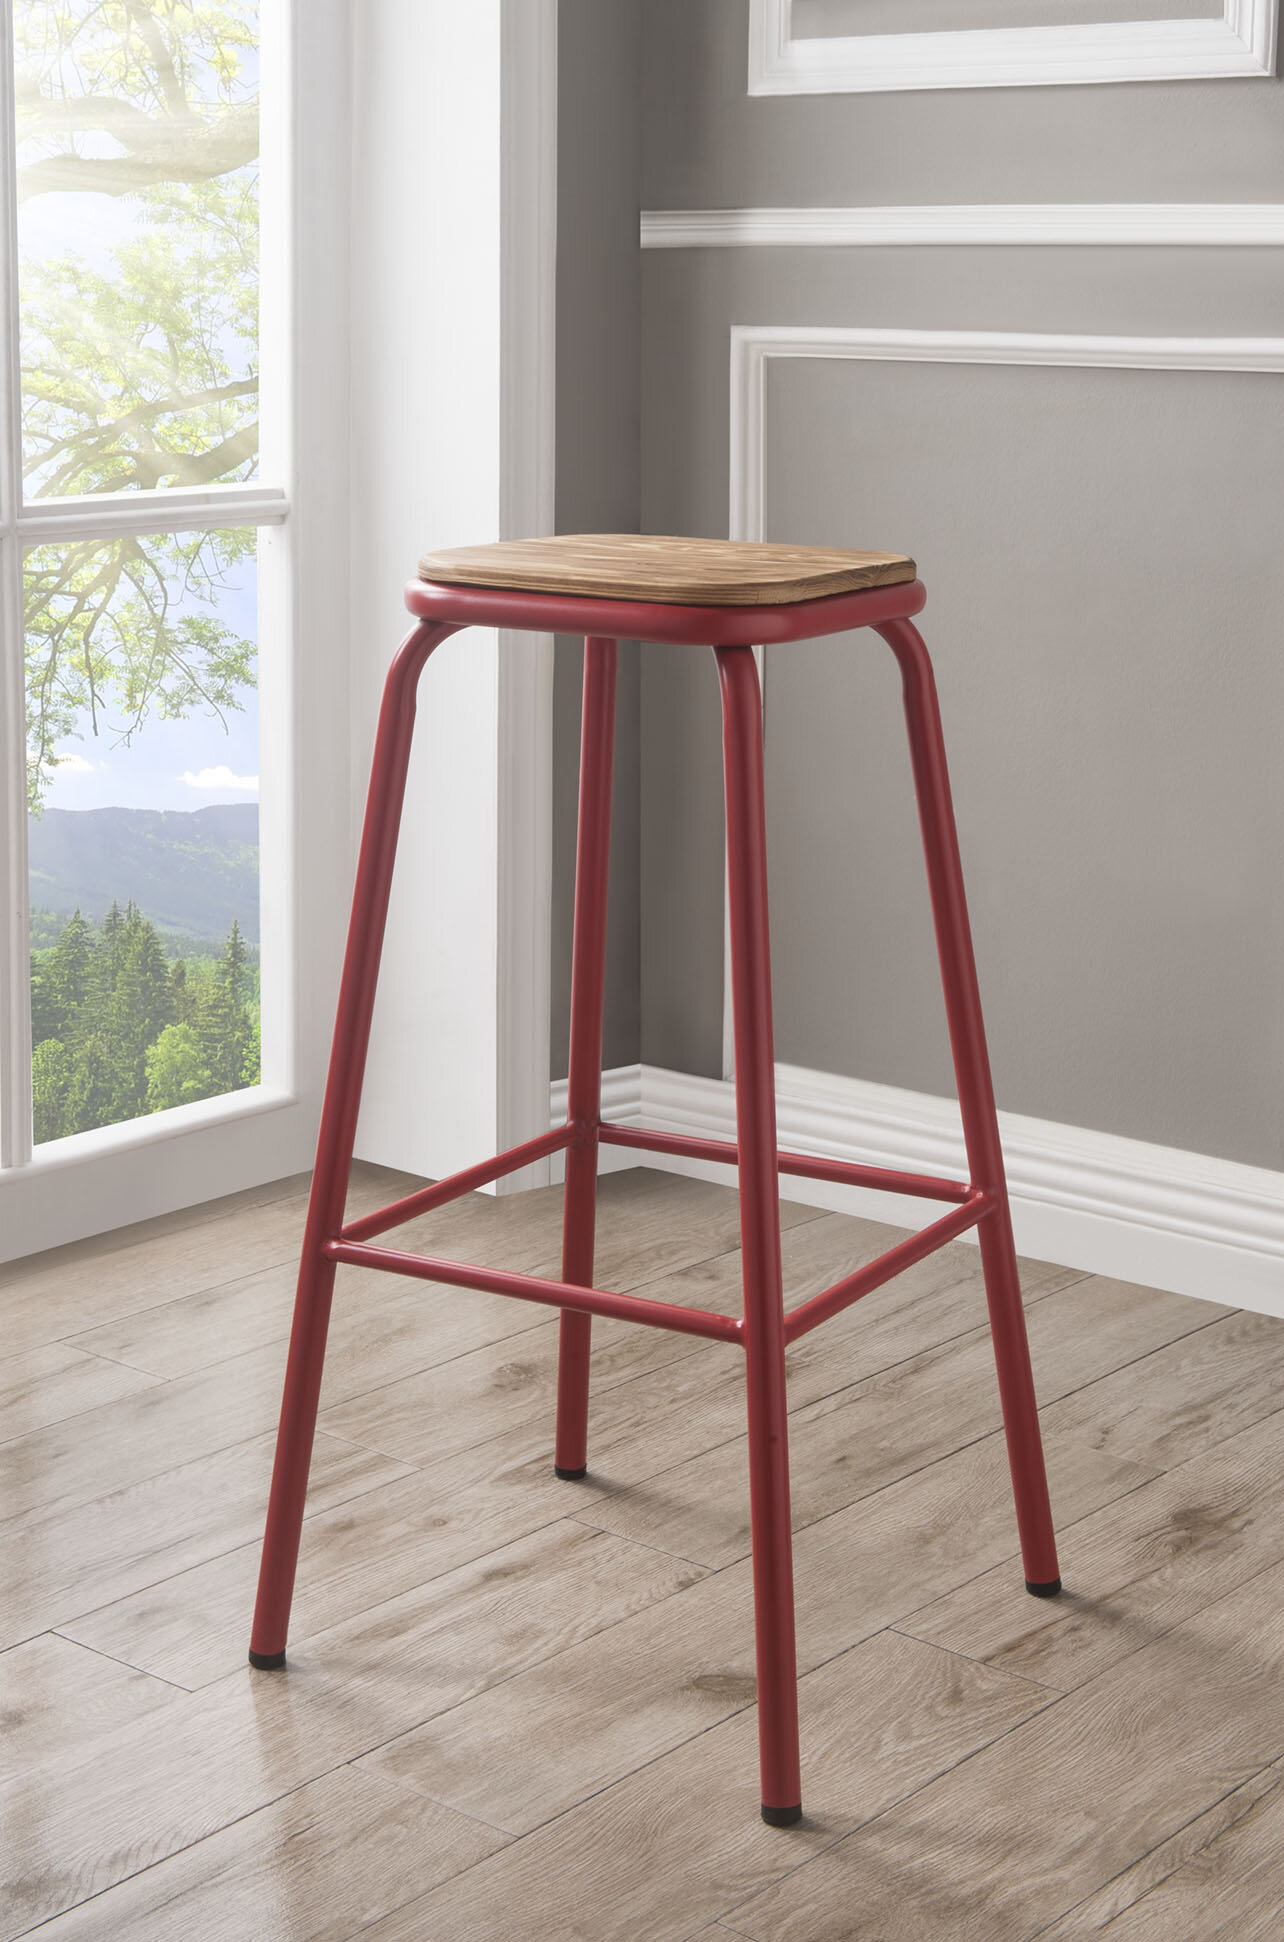 2 Red Bar Height Bar Stools You Ll Love In 2021 Wayfair